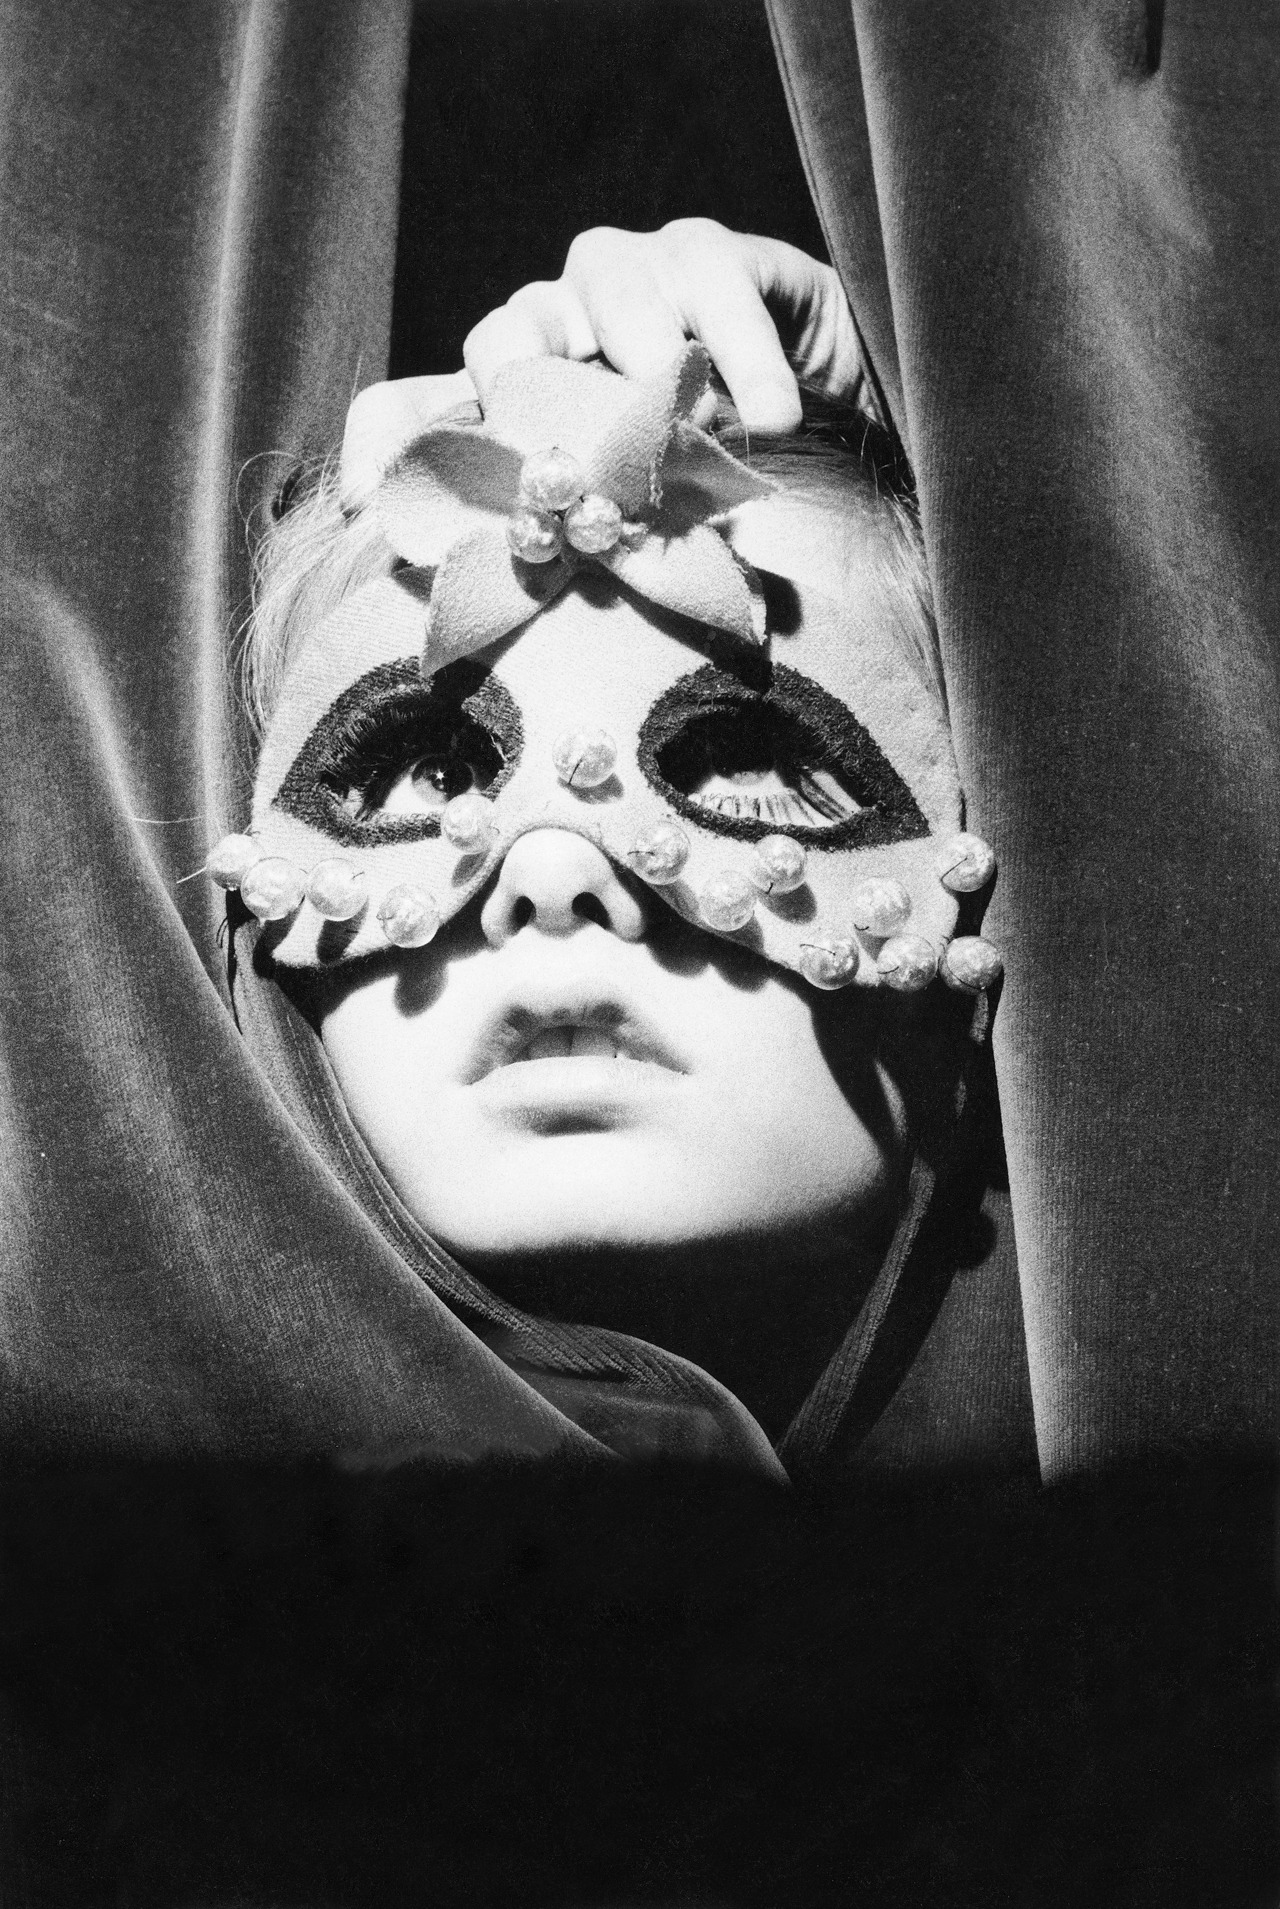 vogueaustralia:  From the Vogue archive: A young Twiggy wearing a mask and peeking through the curtains of the Paris shop Torrente, 1967 #vogue365